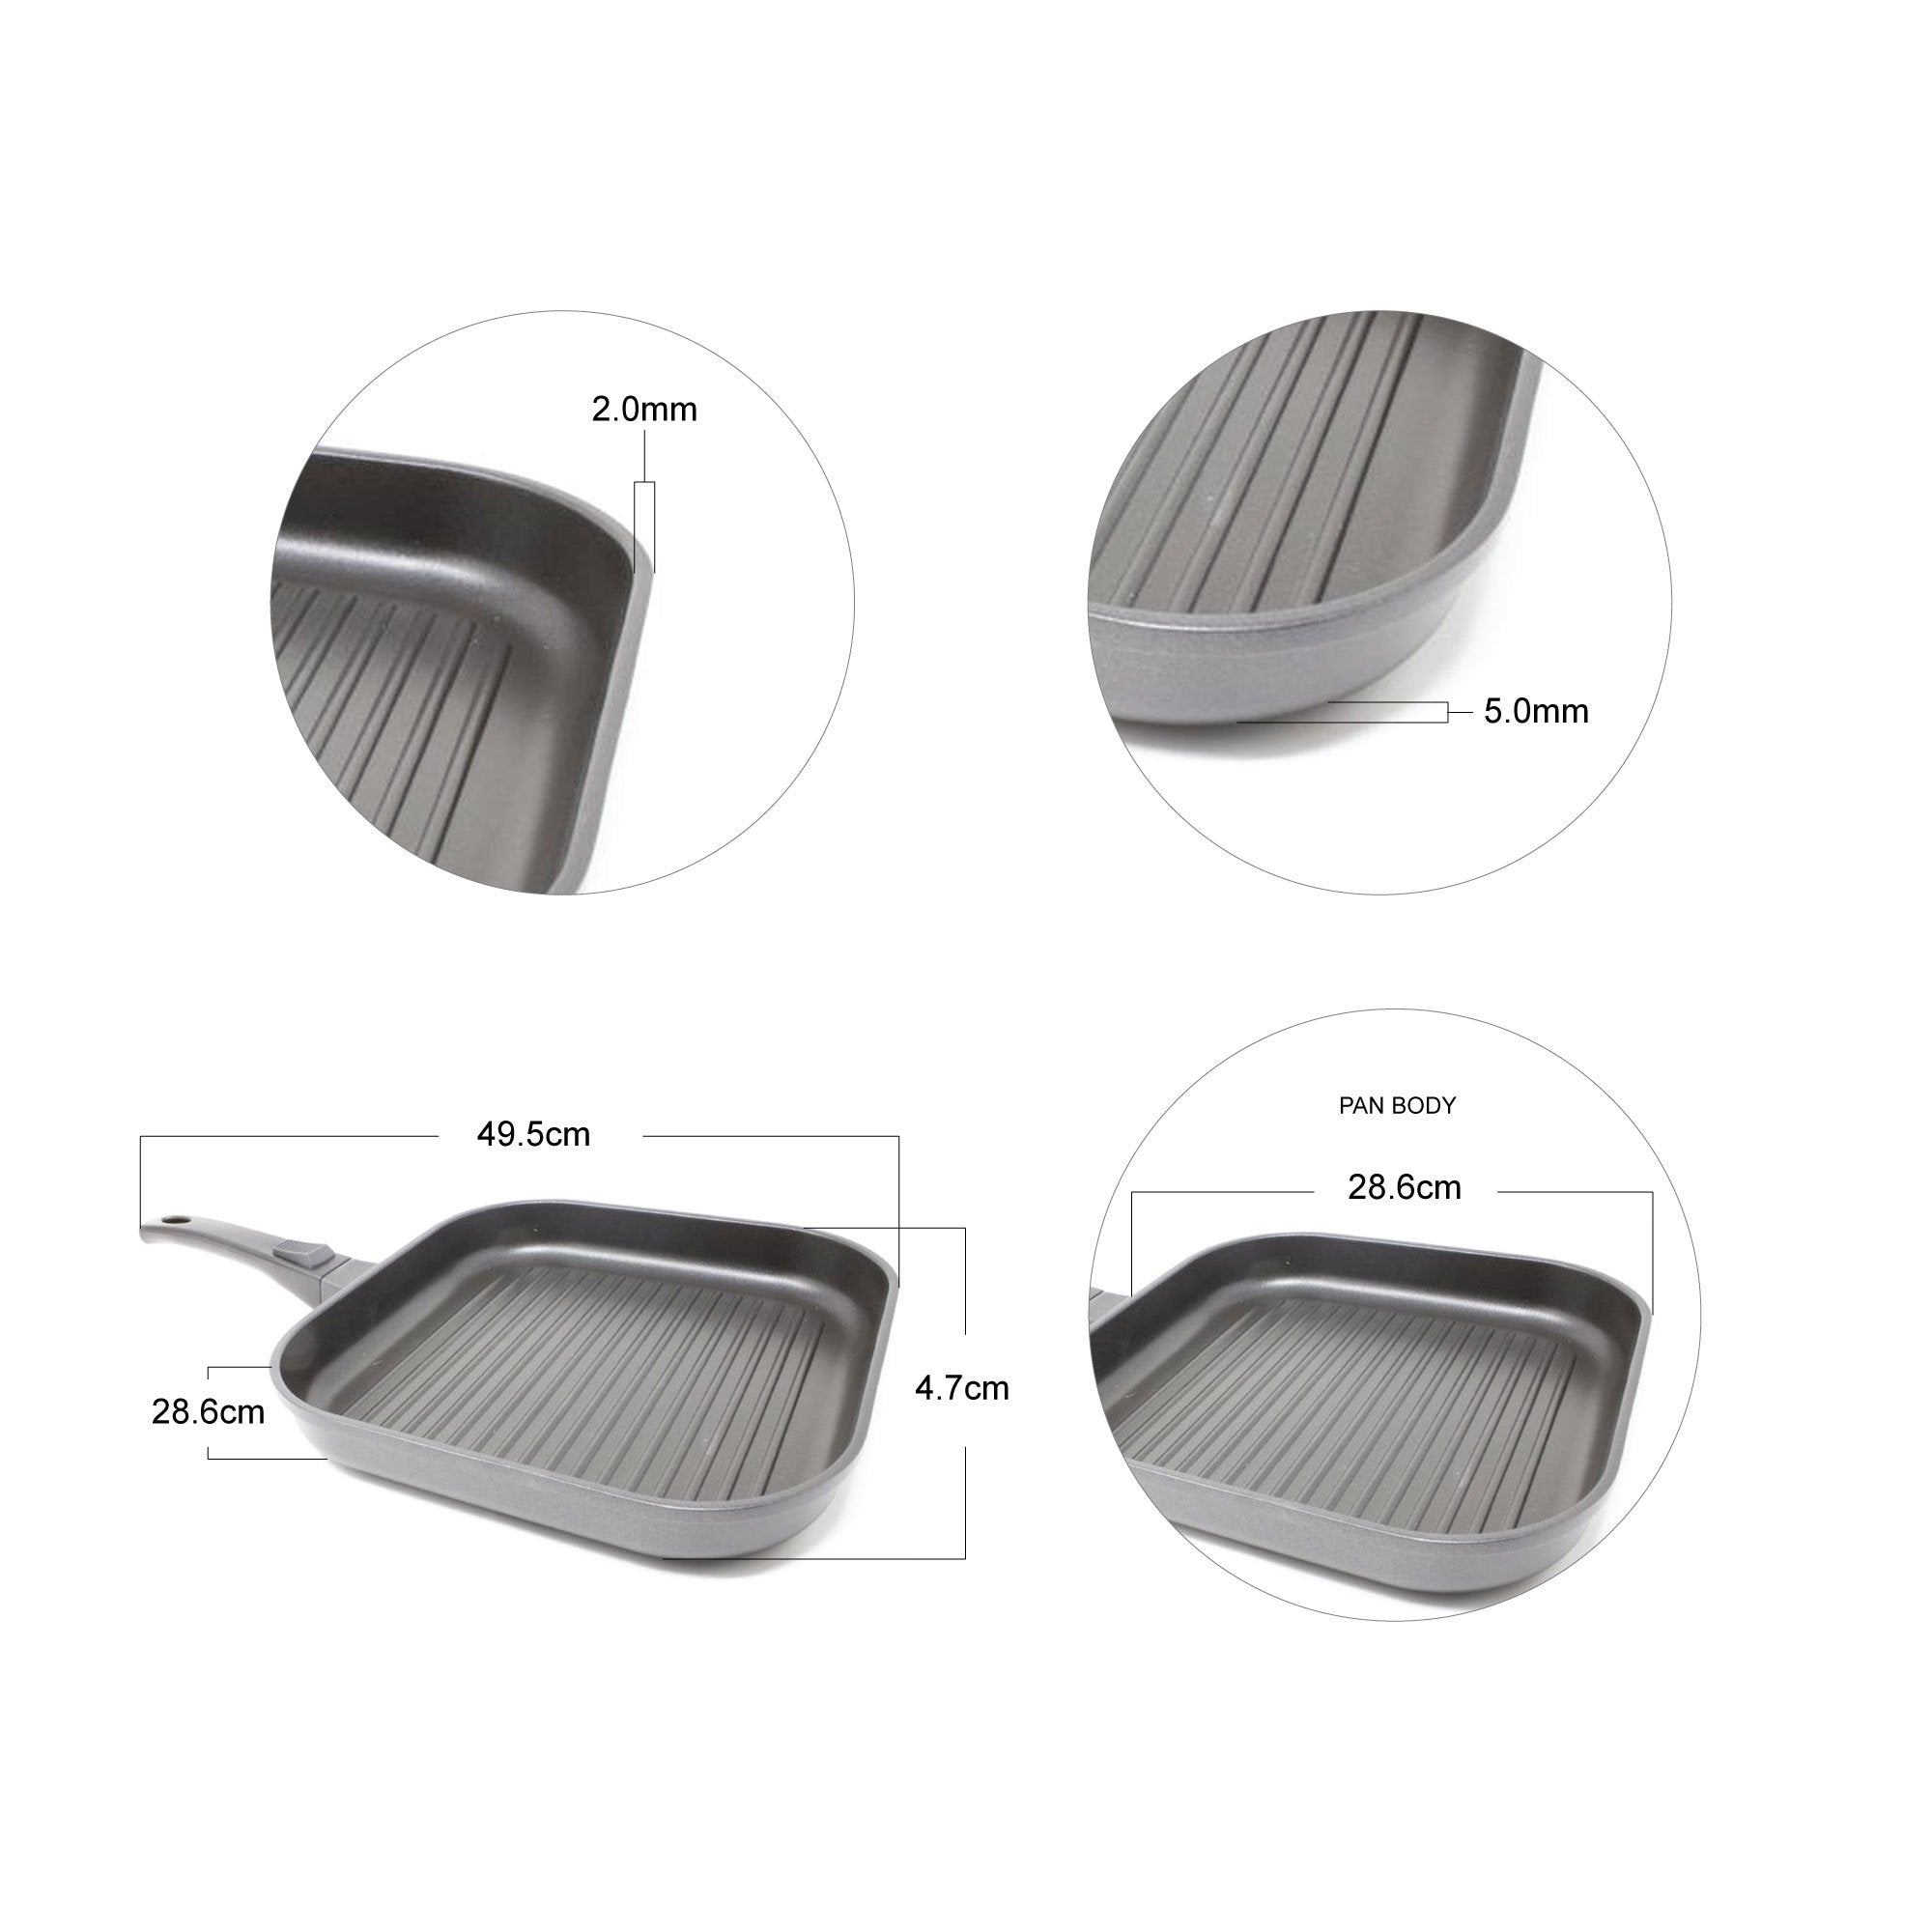 The Anything Pan - Non-stick Griddle Pan with Detachable Handle